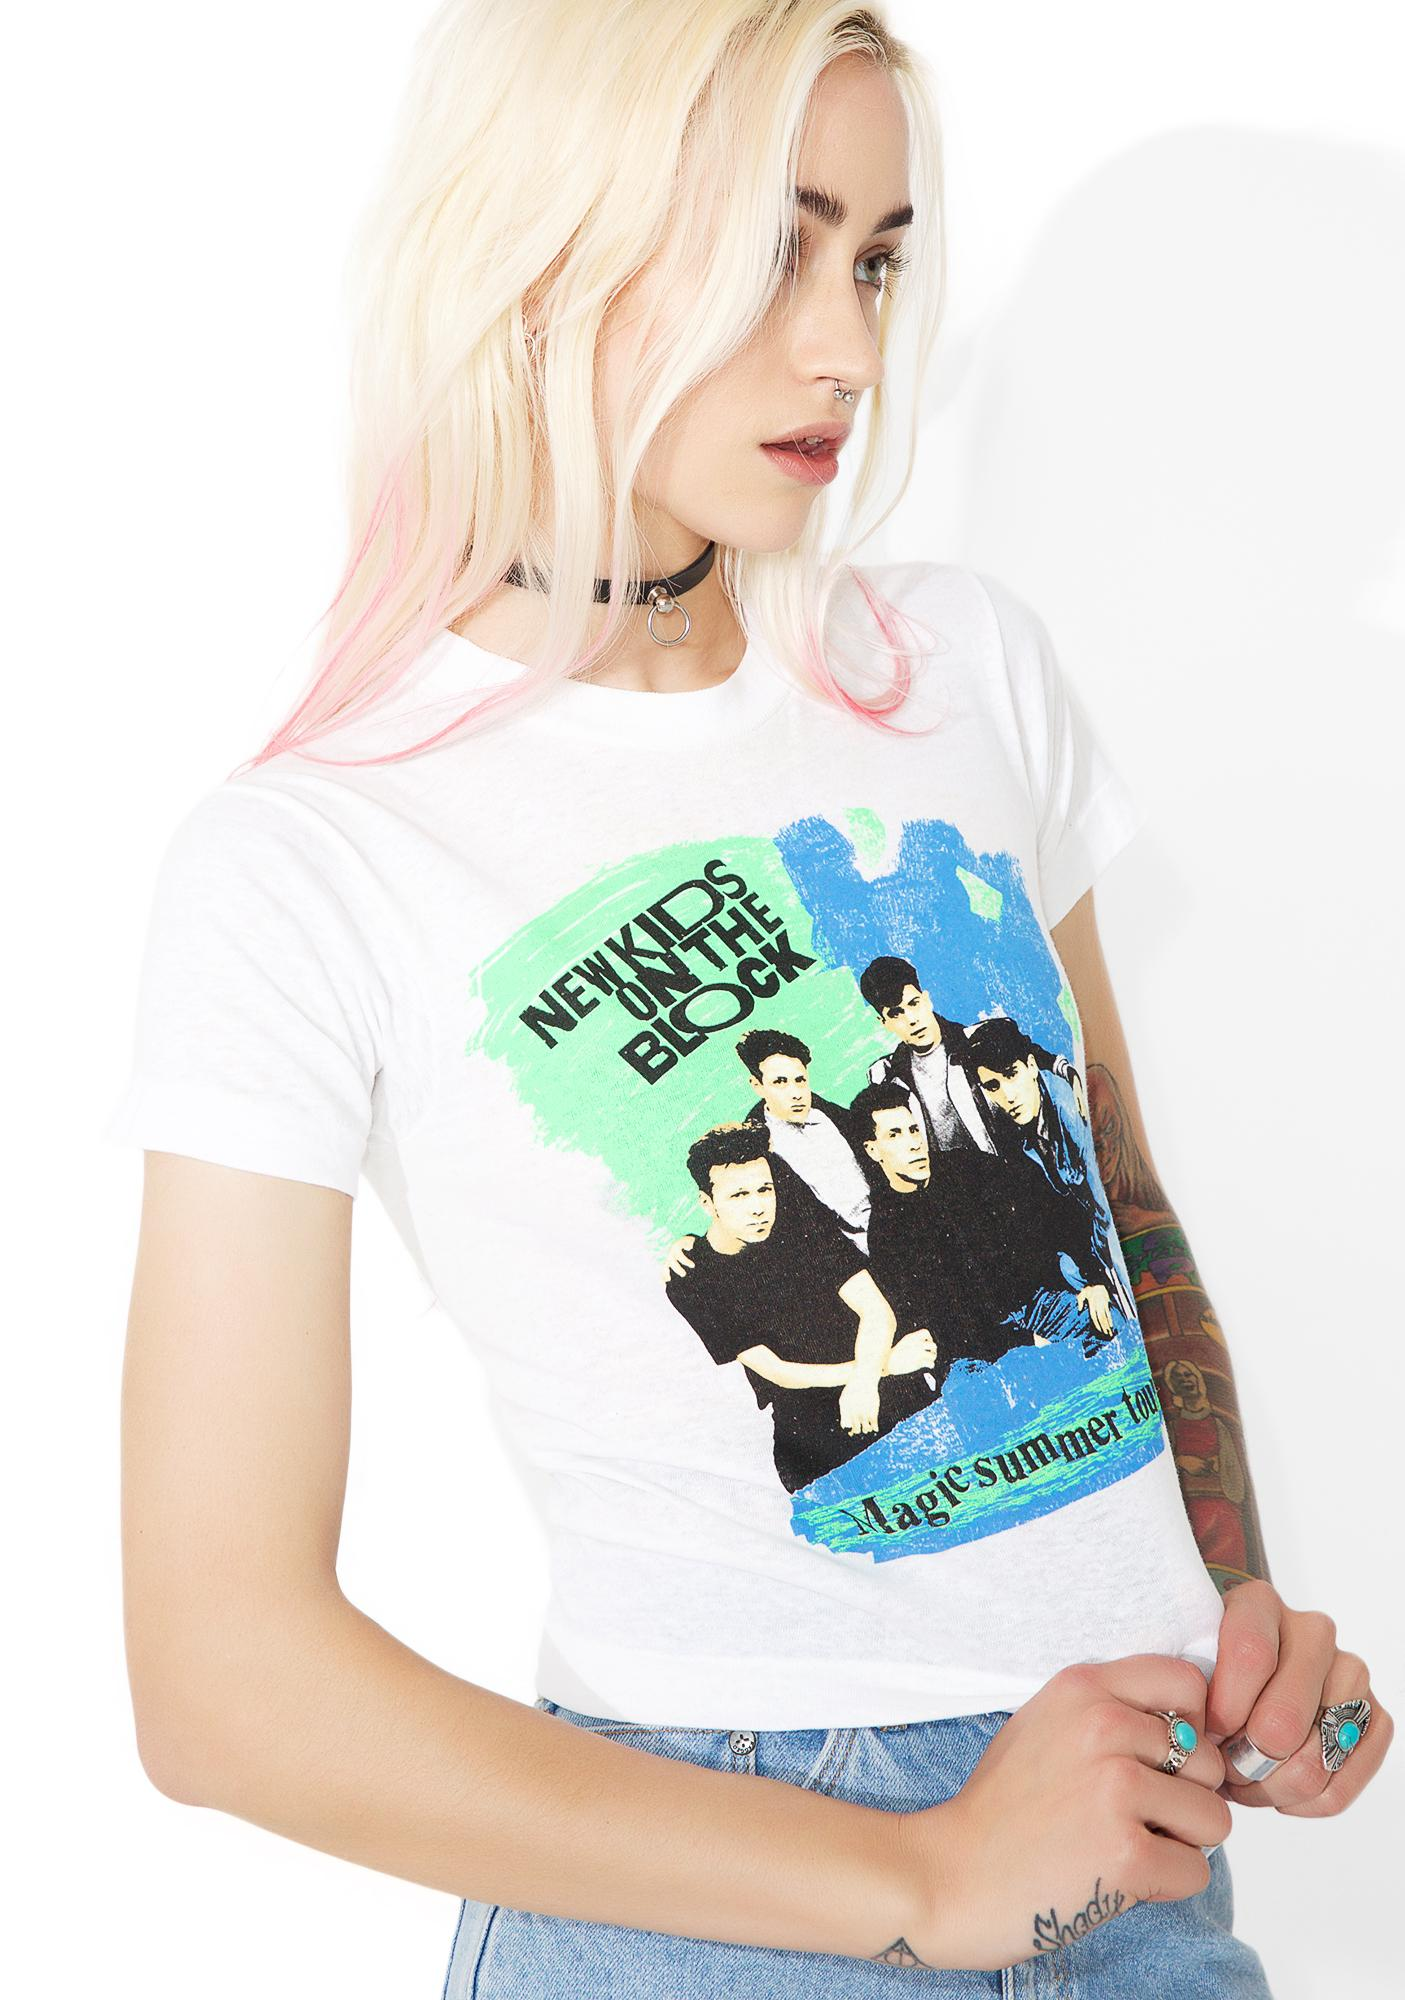 Vintage 90s New Kids On The Block Tour Tee